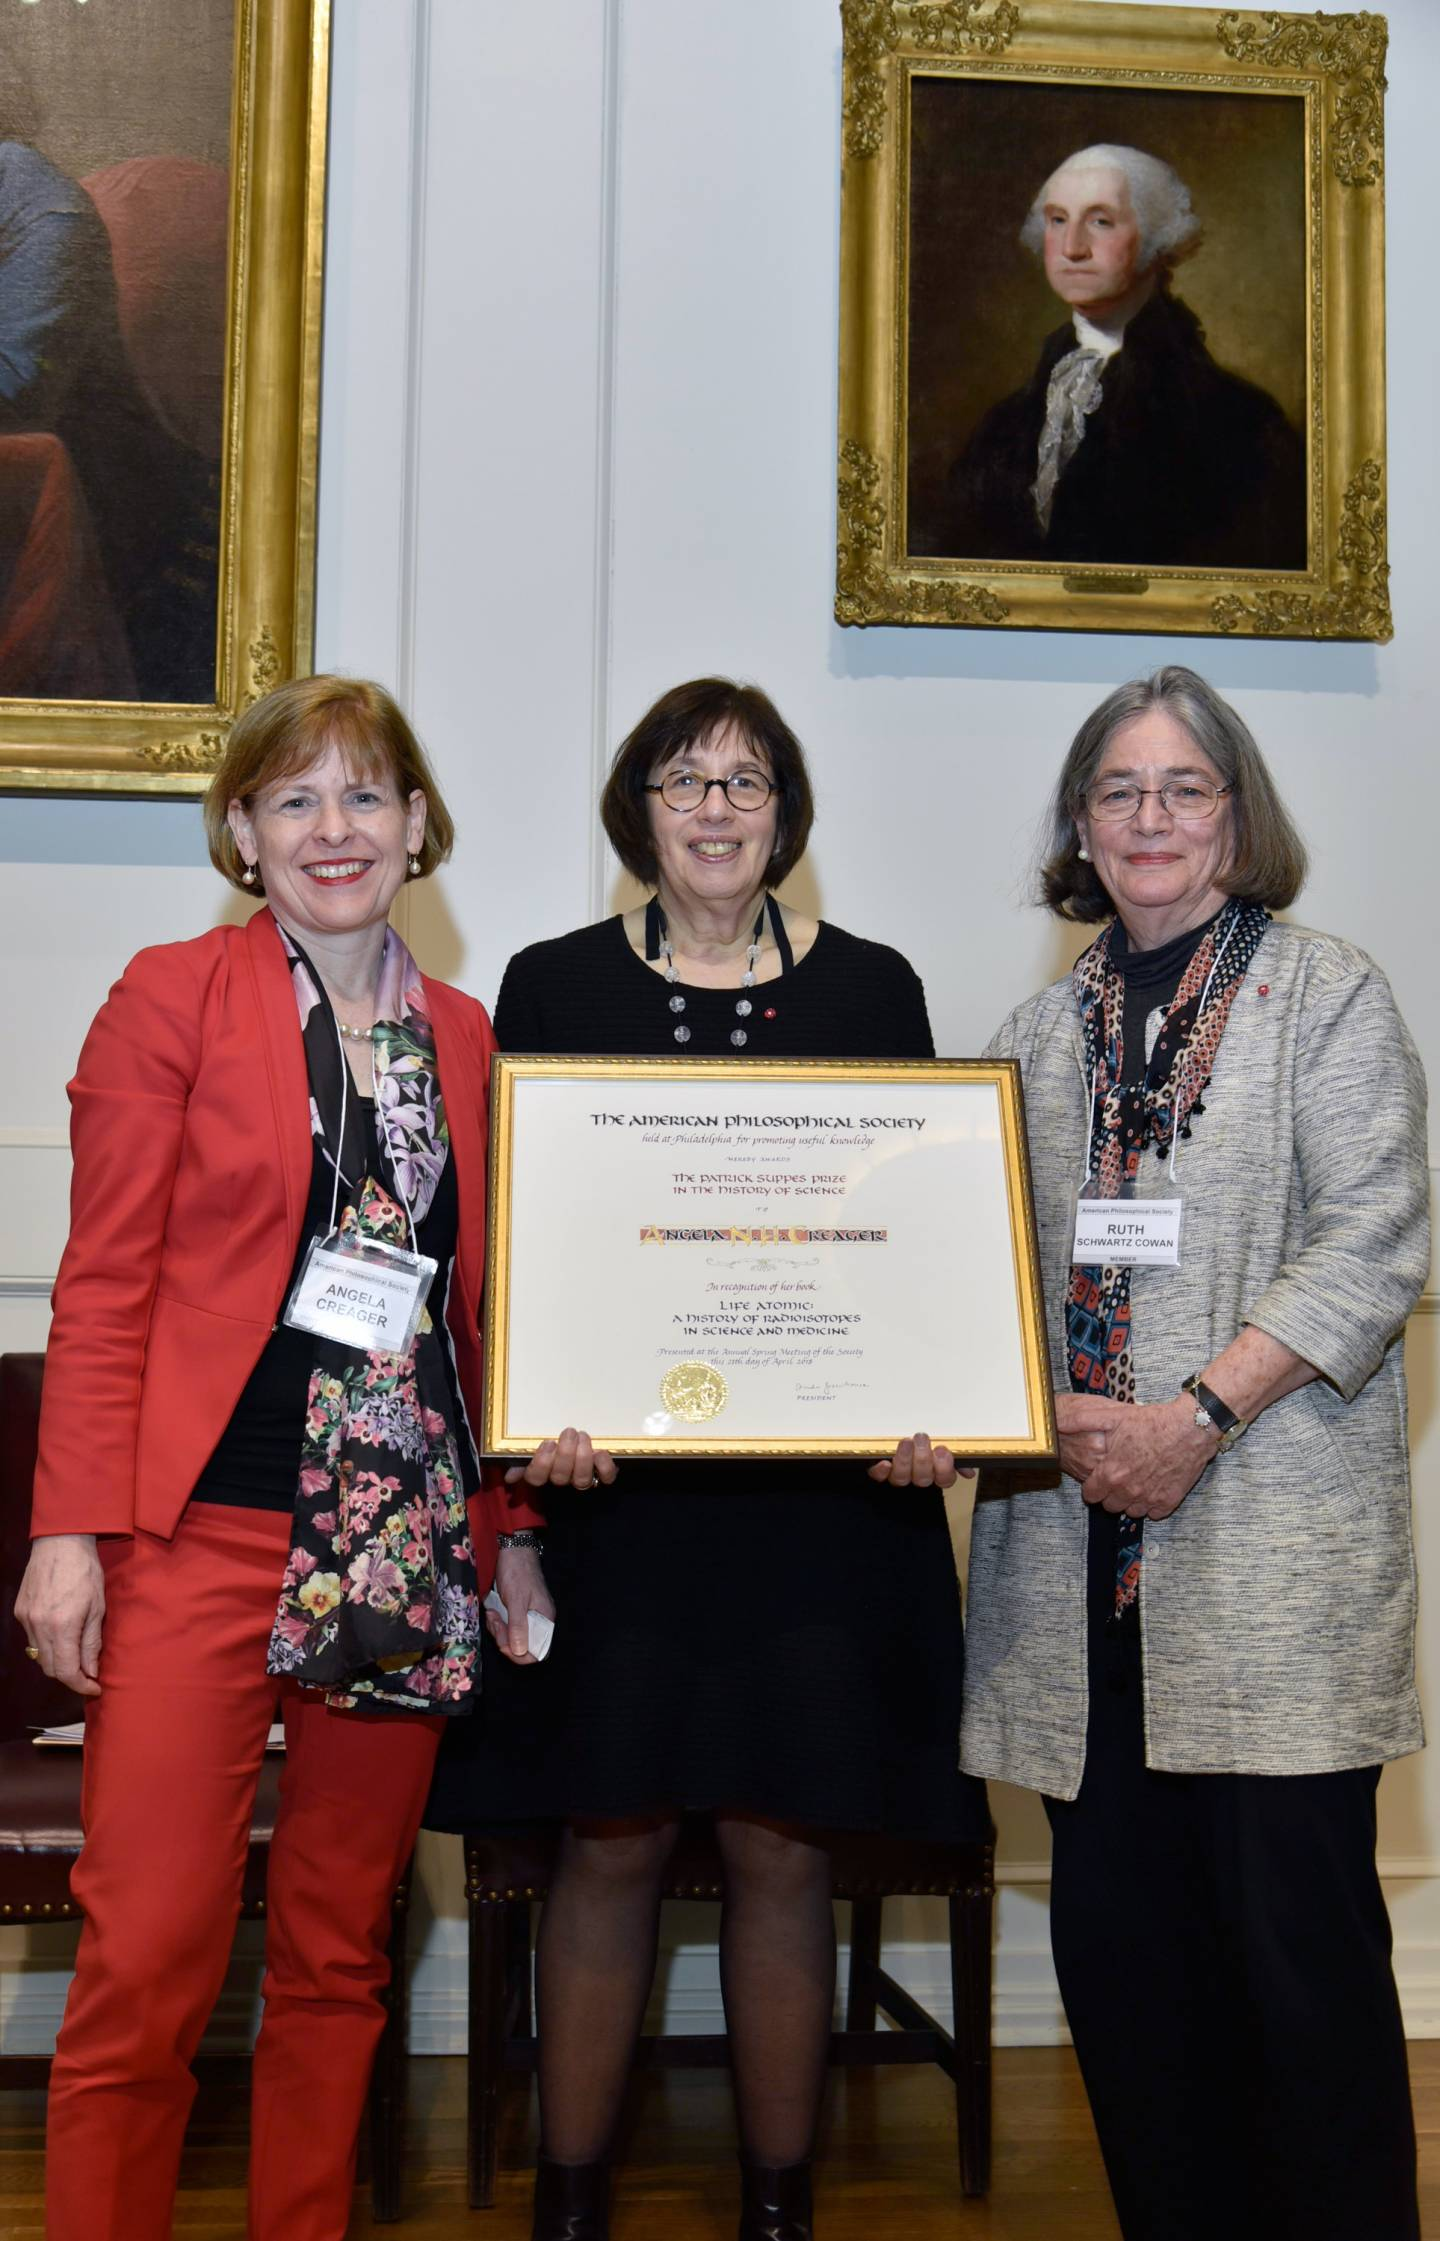 from left: Creager; Linda Greenhouse, president of the American Philosophical Society; and Ruth Schwartz Cowan, chair of the prize committee.